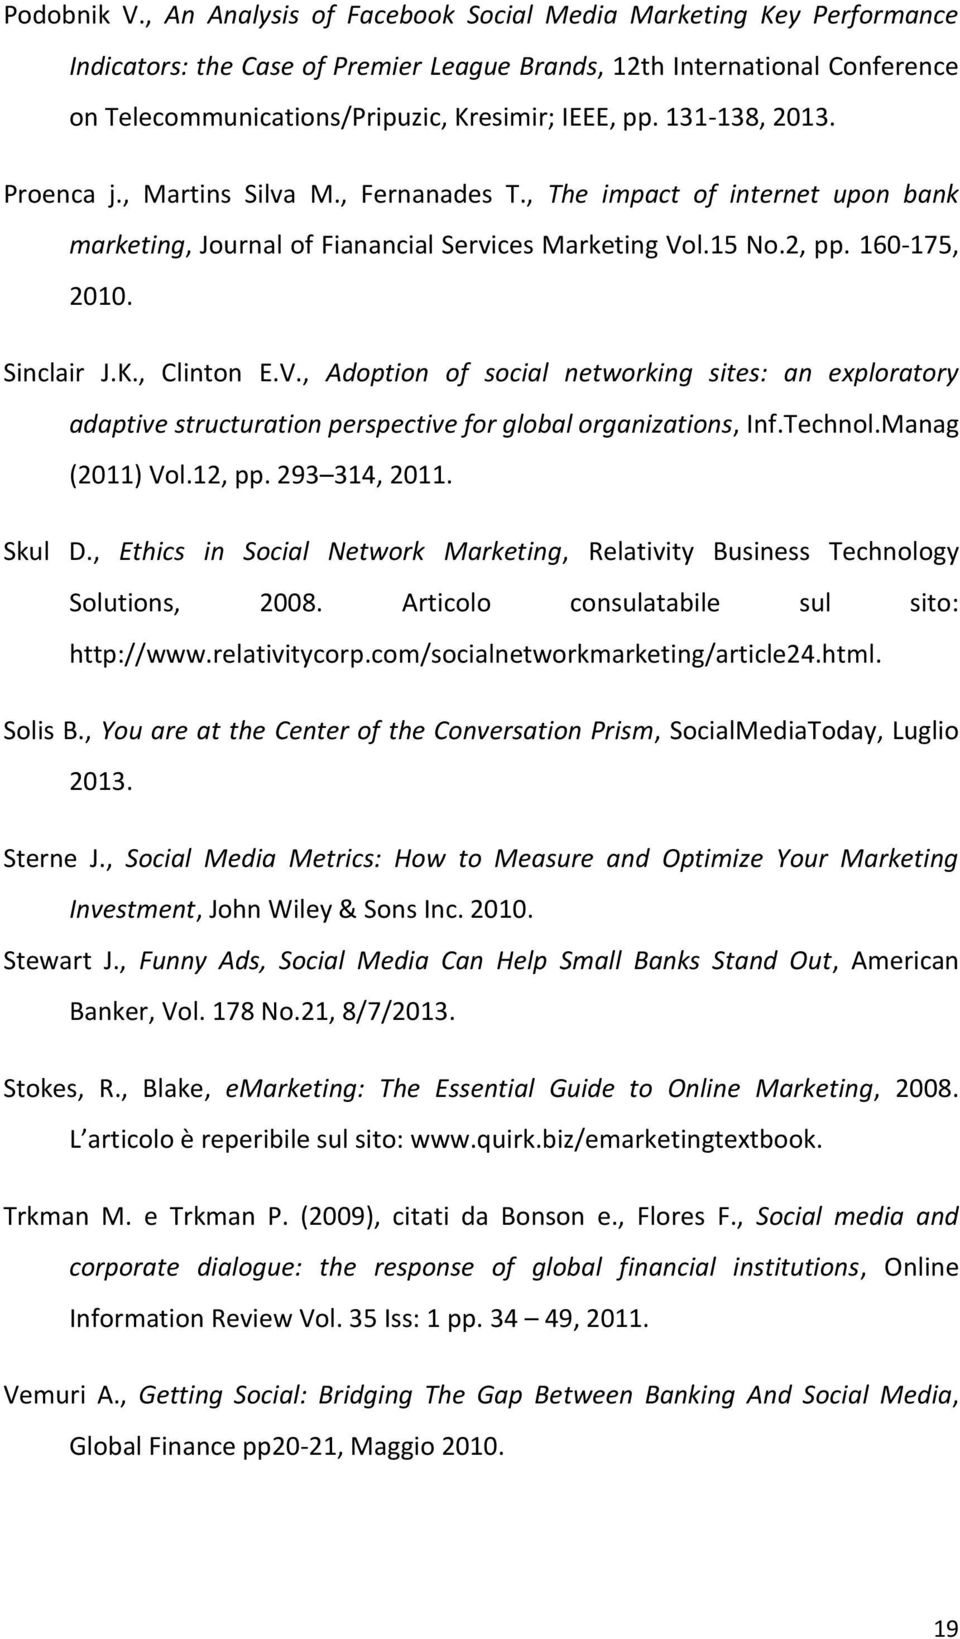 131-138, 2013. Proenca j., Martins Silva M., Fernanades T., The impact of internet upon bank marketing, Journal of Fianancial Services Marketing Vol.15 No.2, pp. 160-175, 2010. Sinclair J.K.